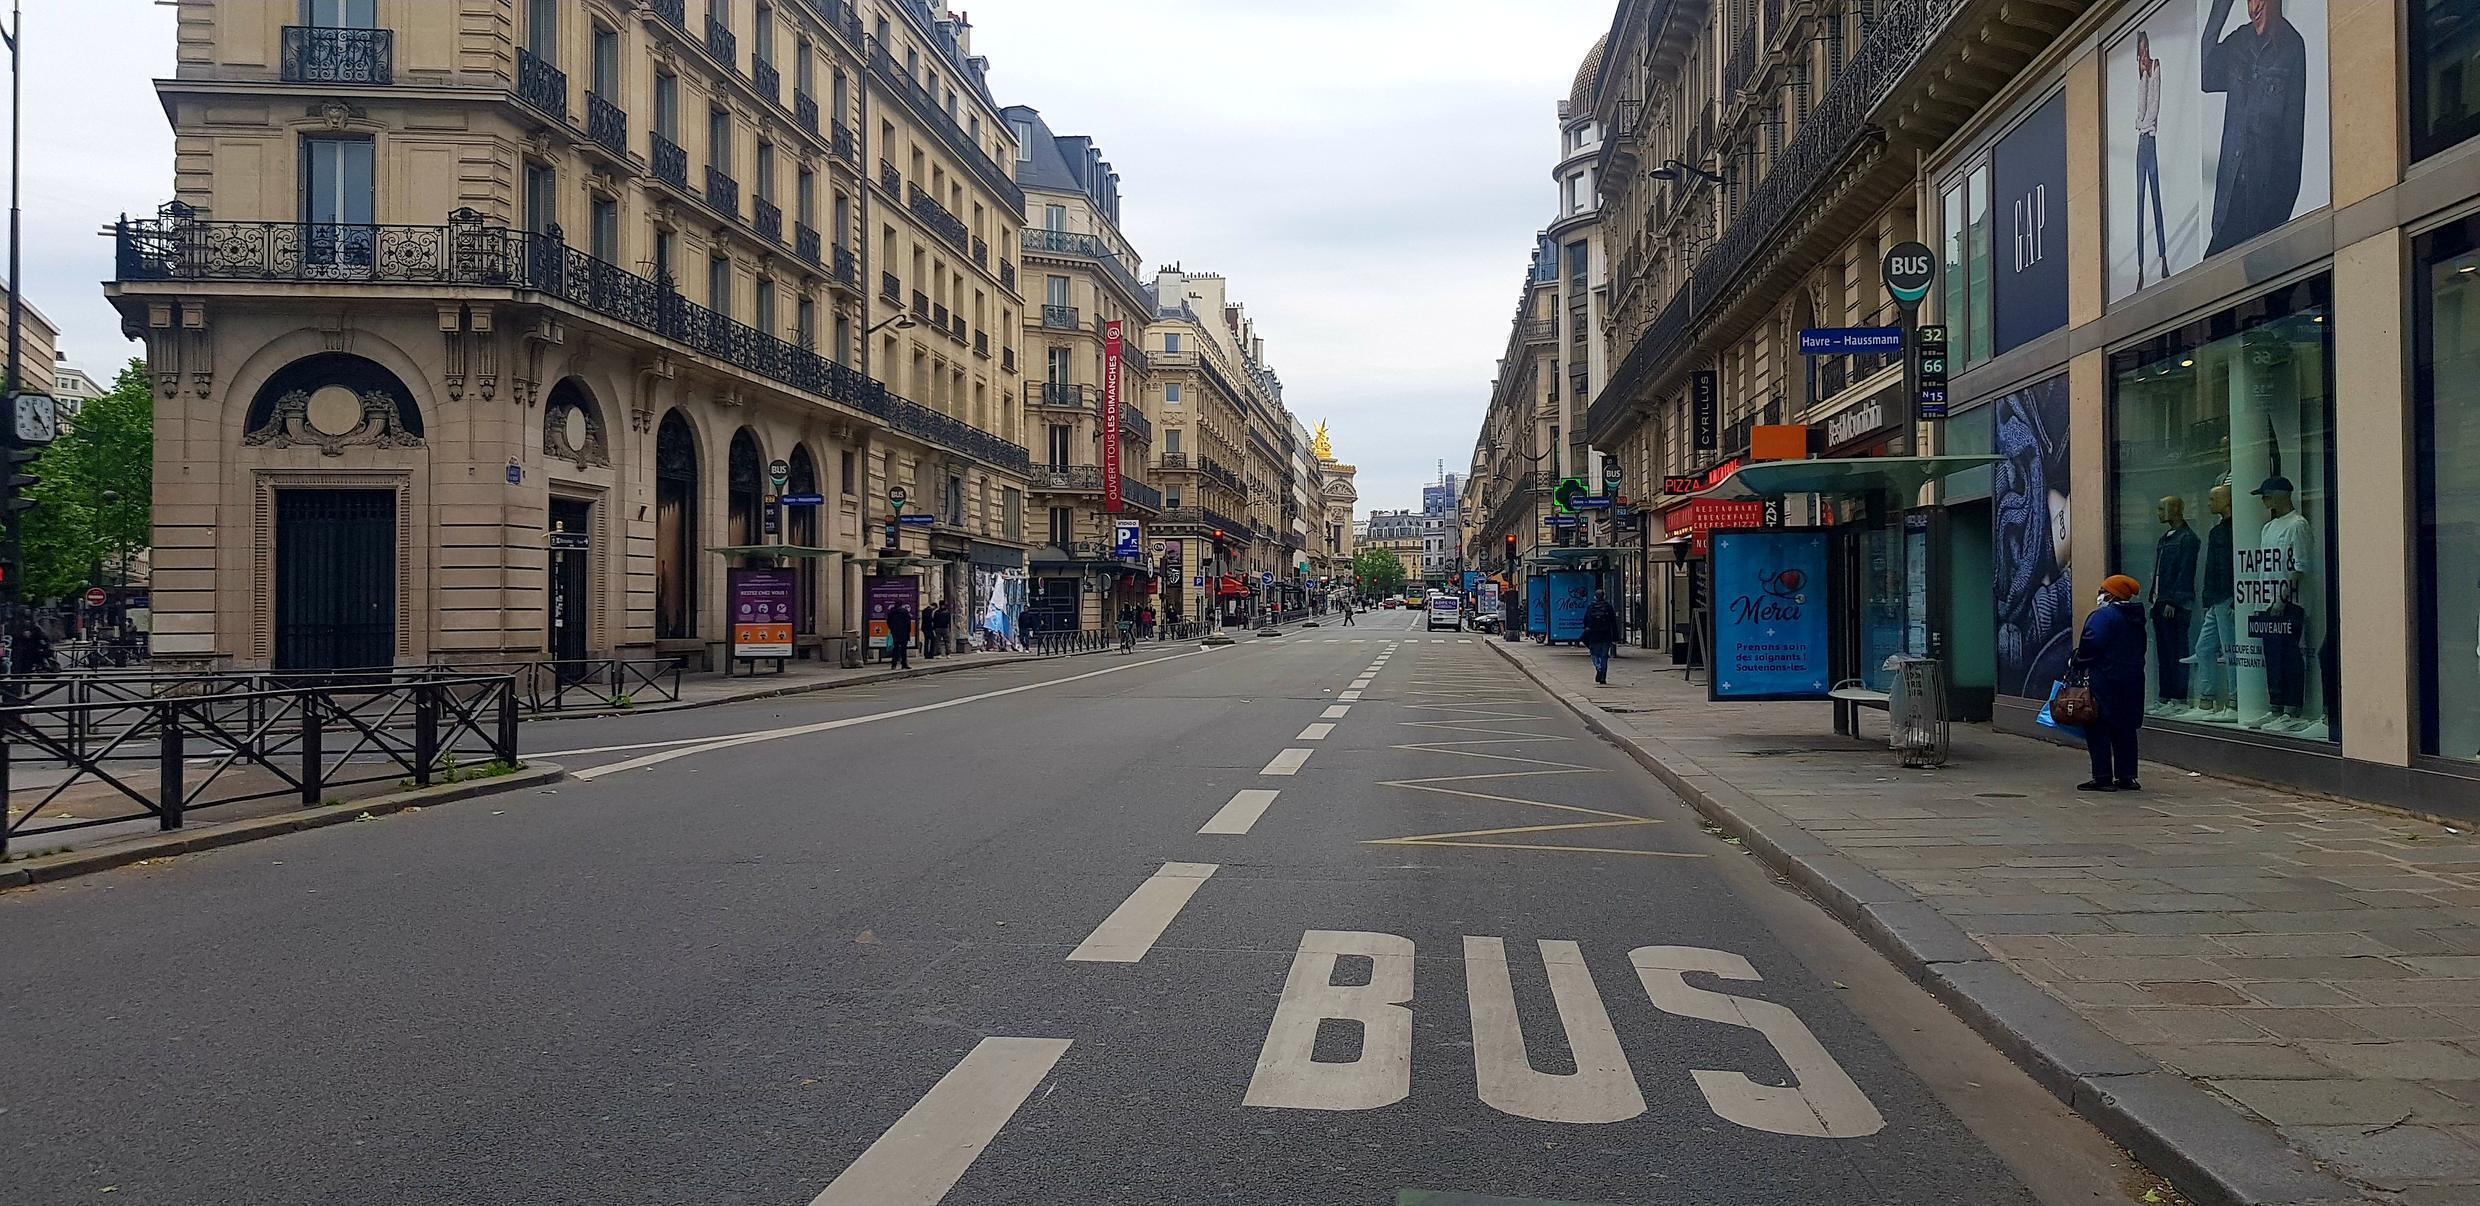 An empty rue Auber without its usual cohorts of buses, cars, motorcycles, tourist coaches despite easing of lockdown restrictions on 11 May 2020.